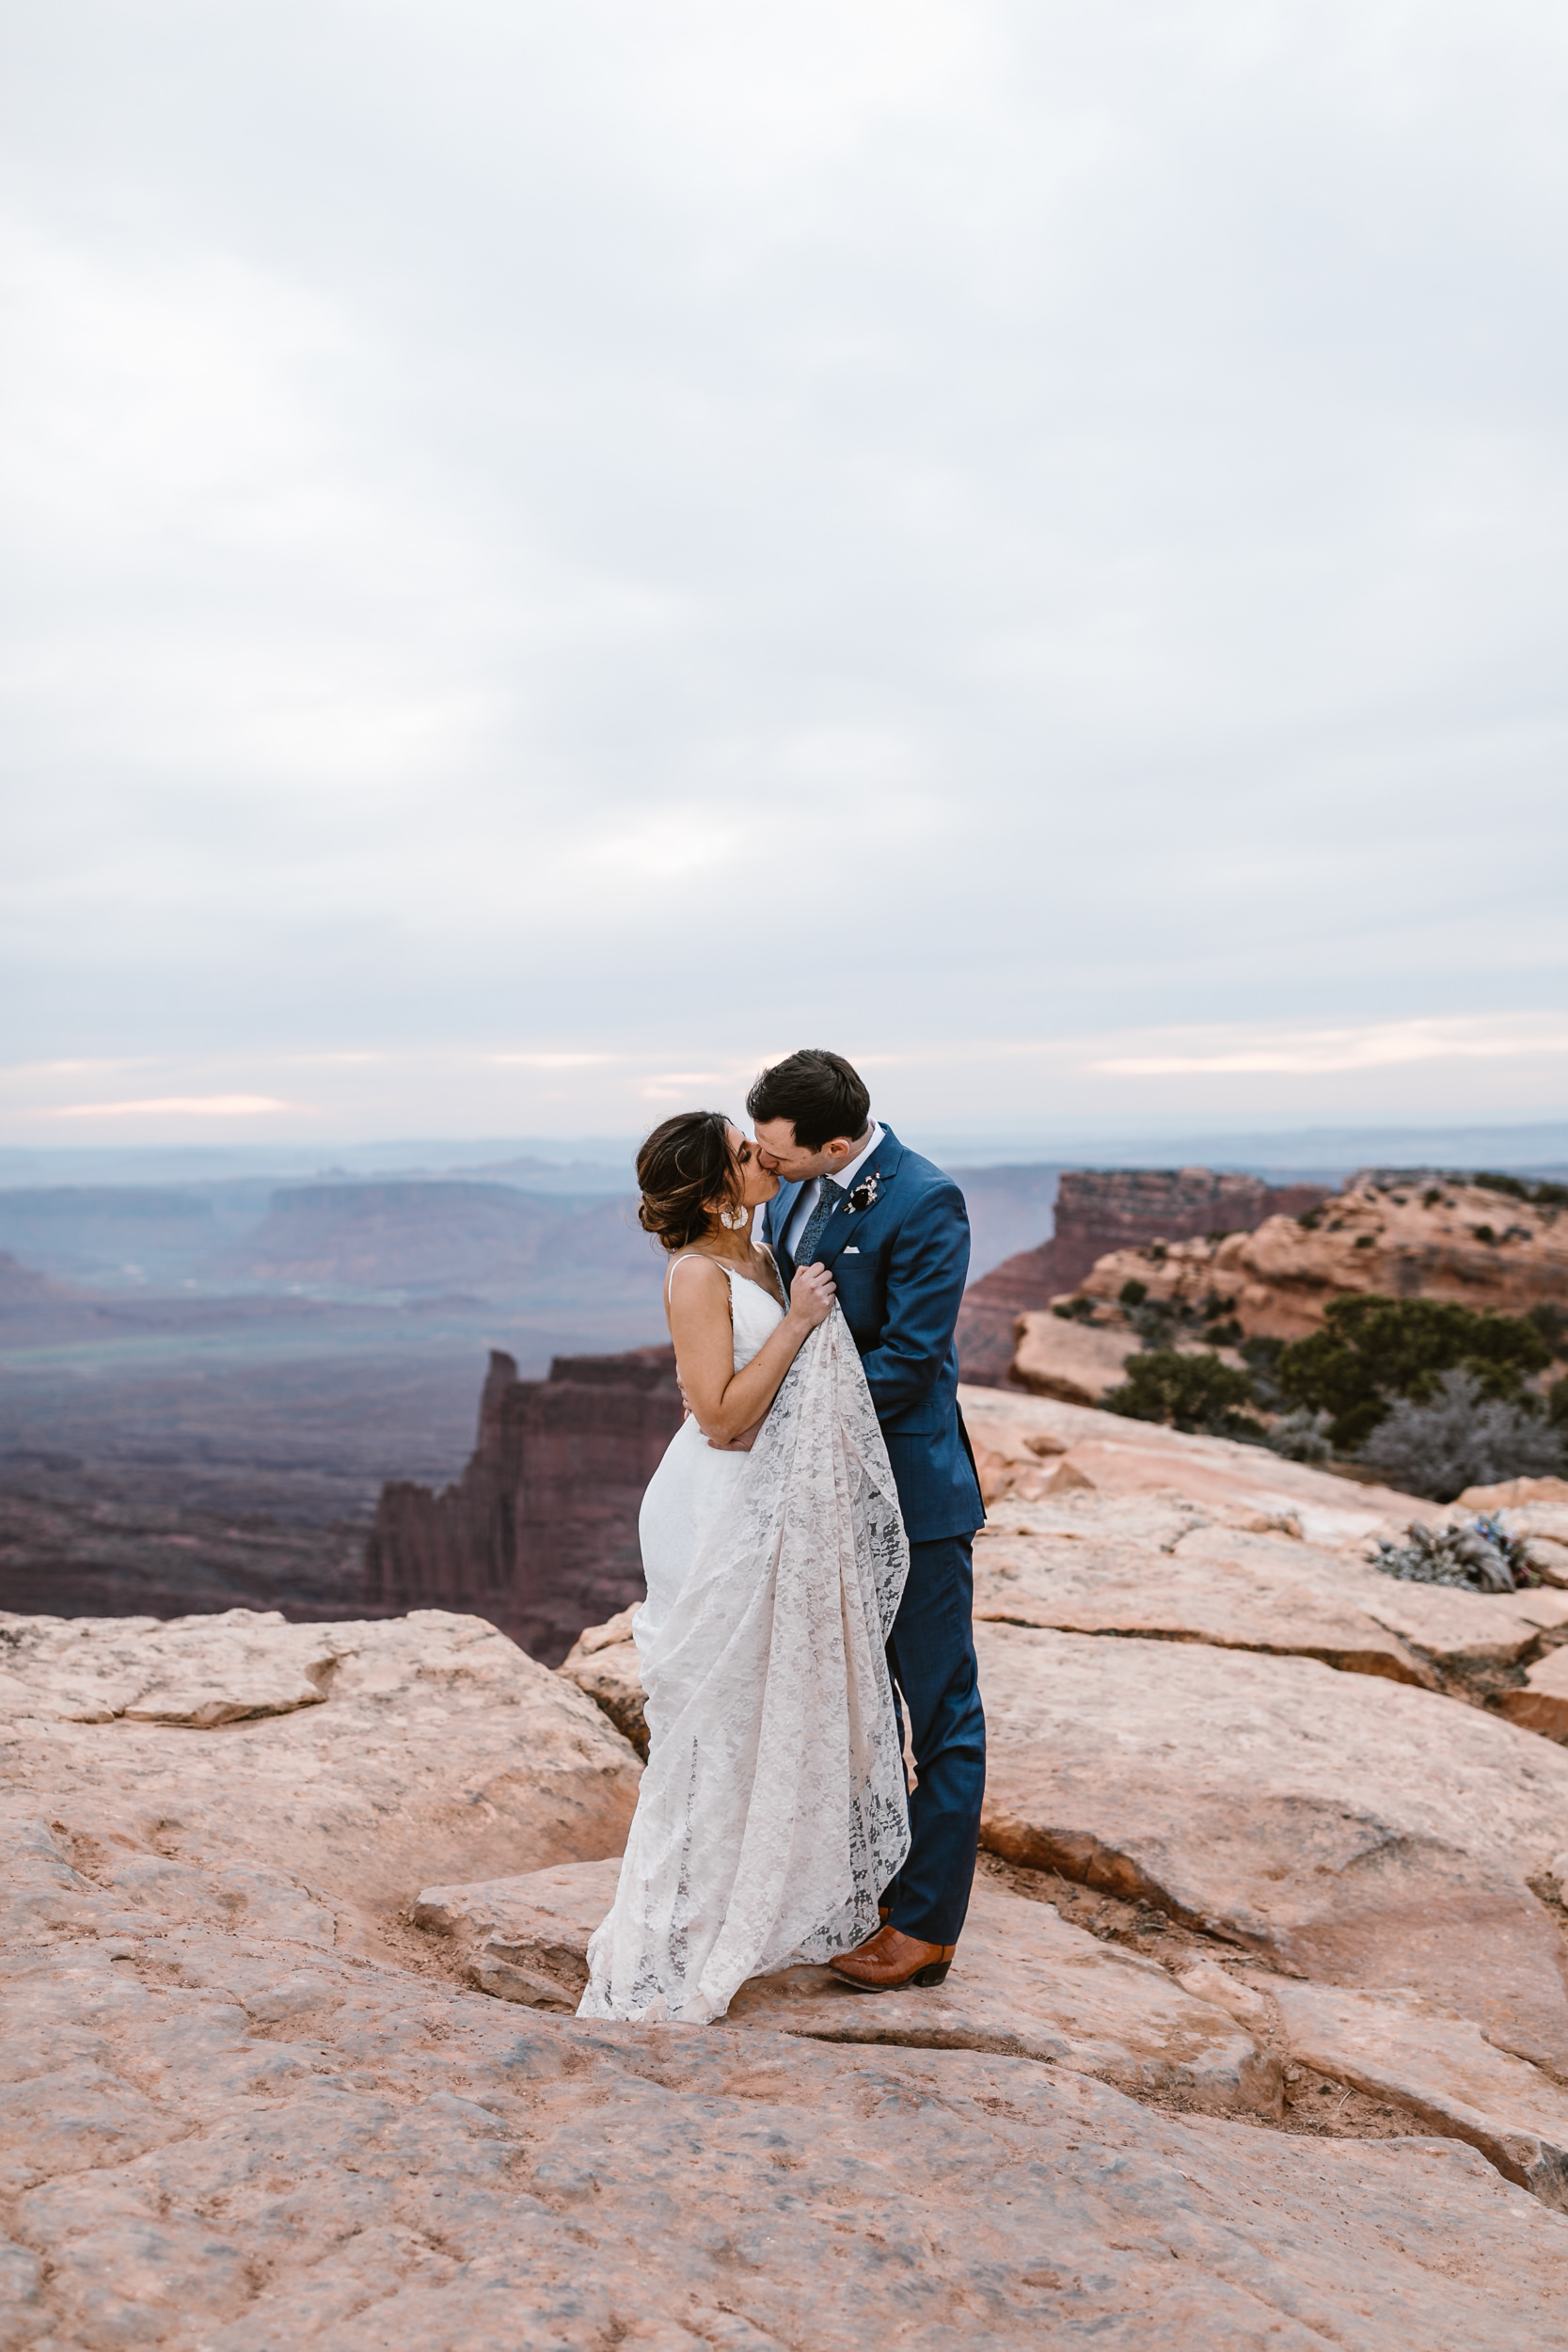 The Hearnes Adventure Wedding near Arches National Park